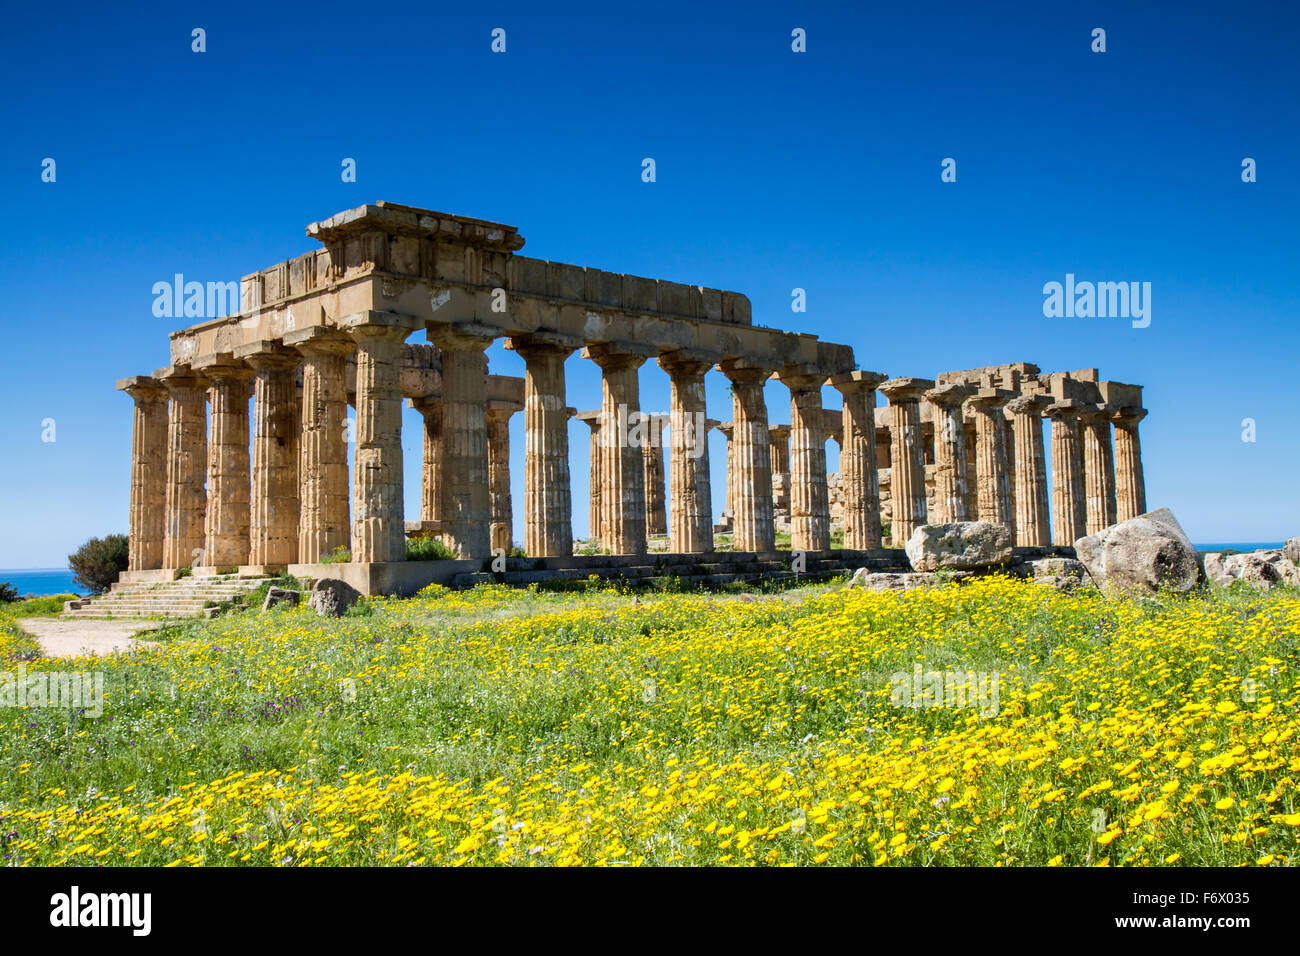 Greek Temple at Selinunte in spring, Sicily, Italy - Stock Image